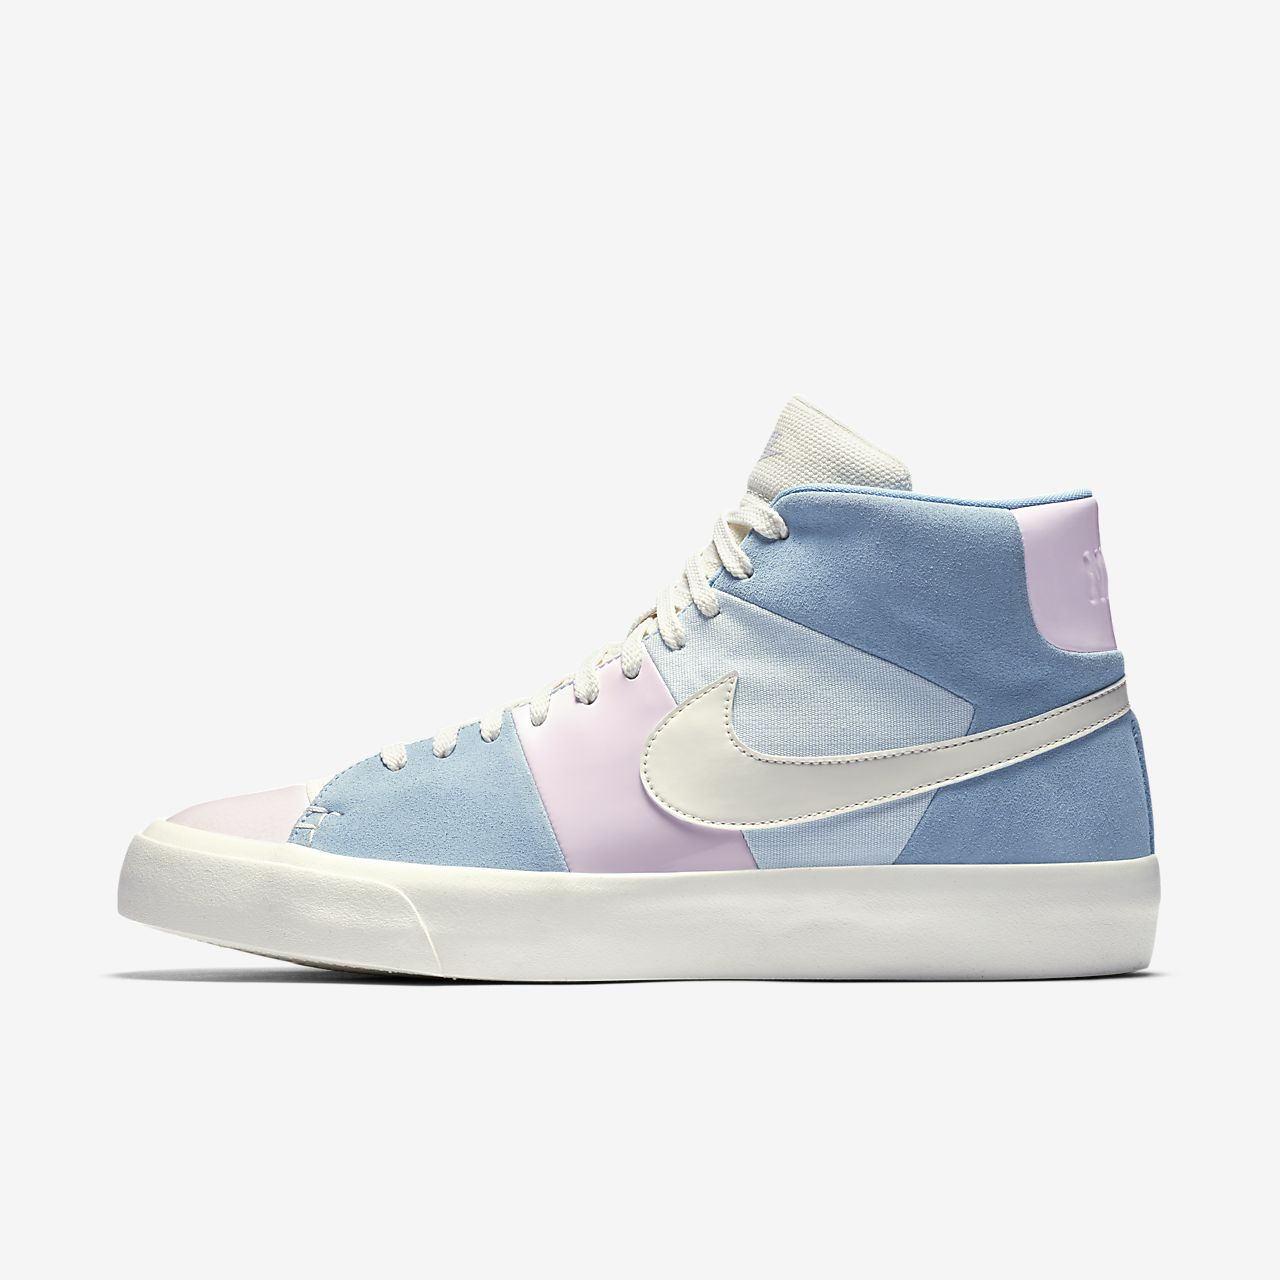 Nike Blazer Royal Easter QS Mens Shoe